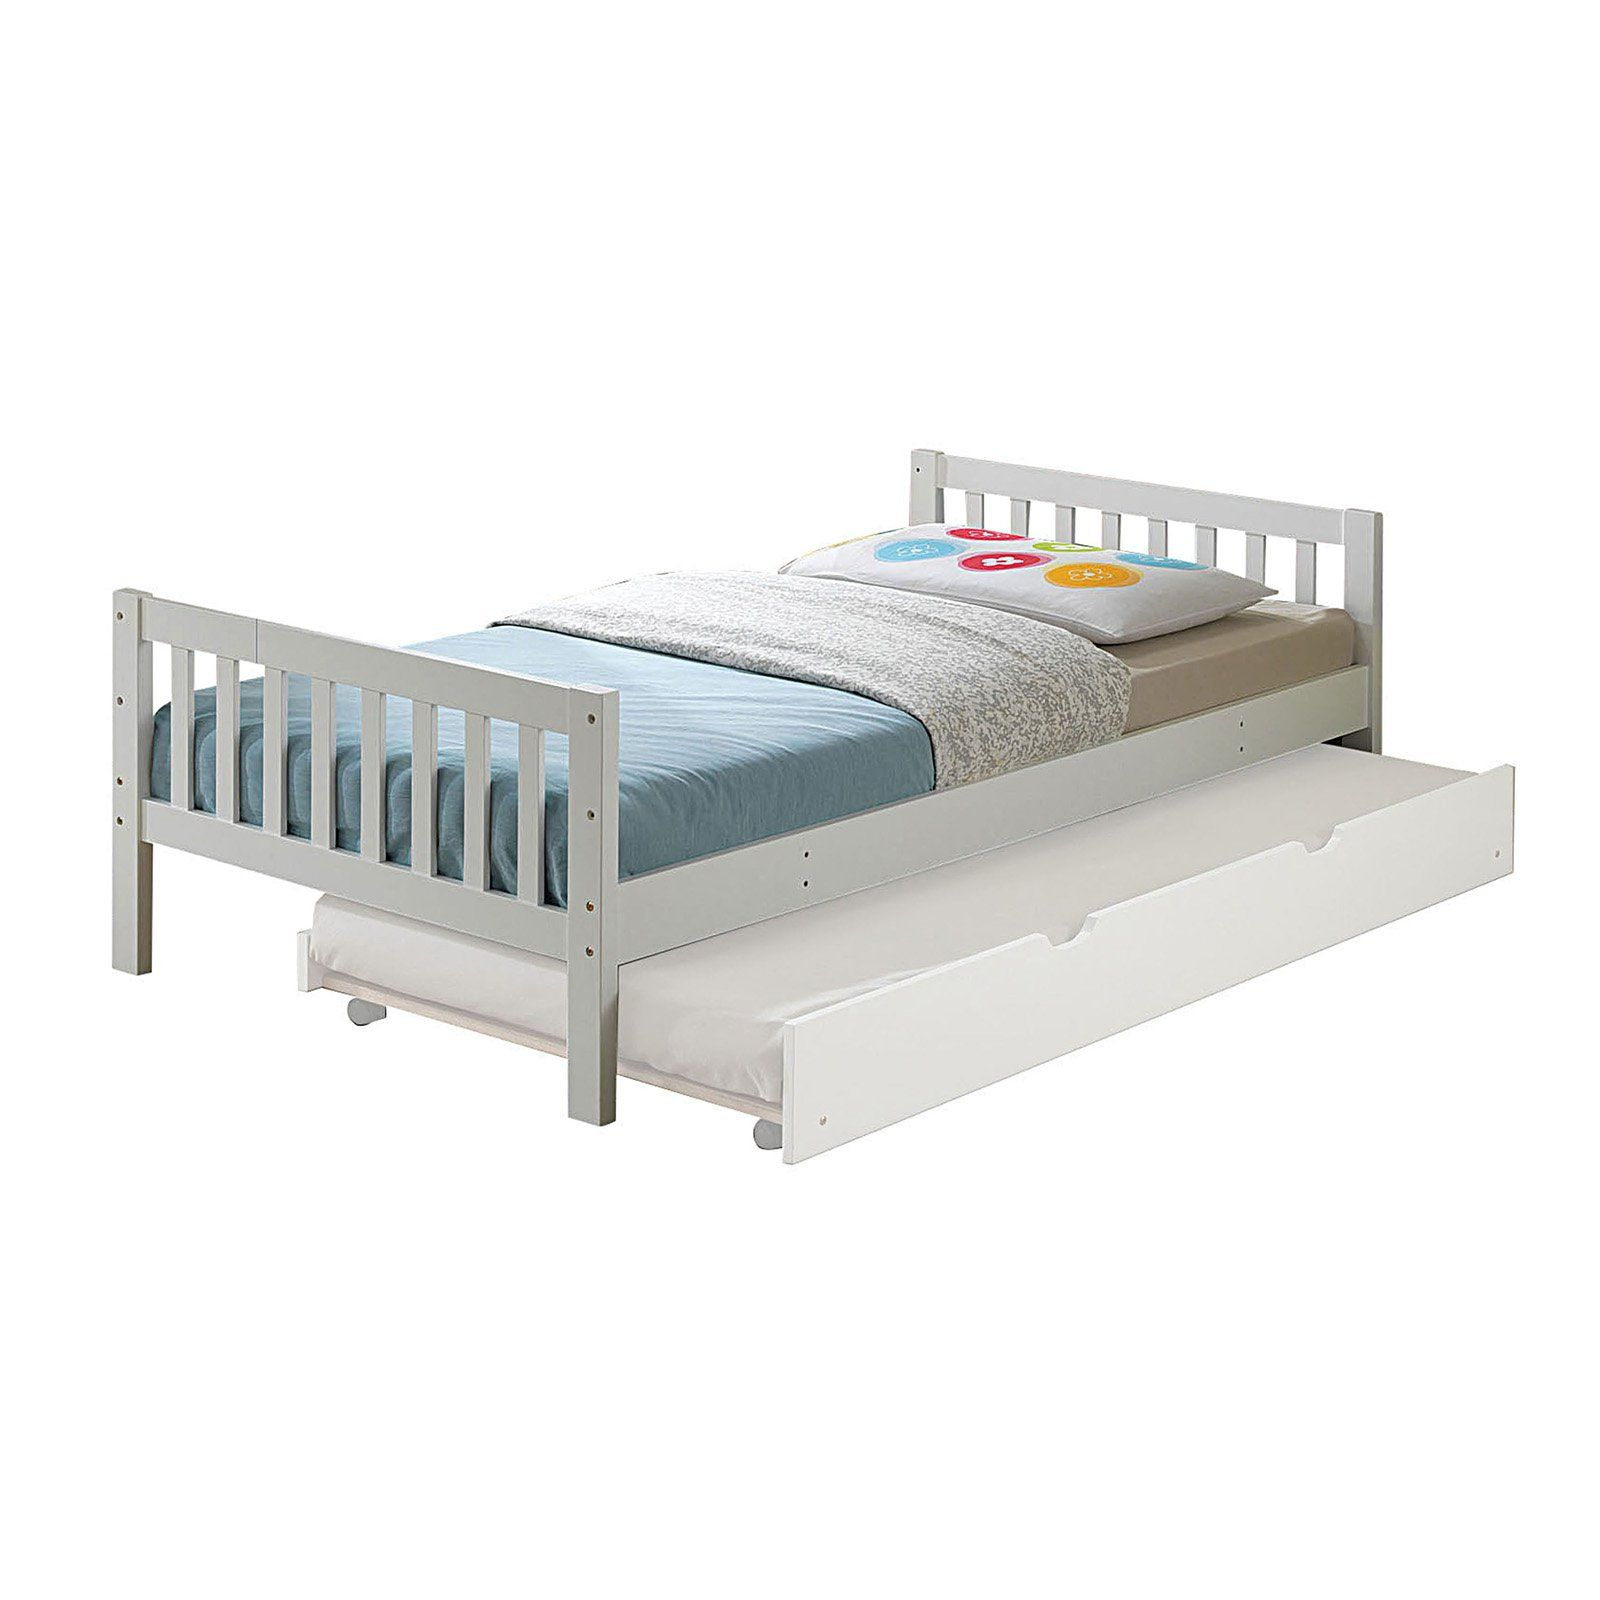 Acme Furniture Cutie Platform Bed in White Twin trundle